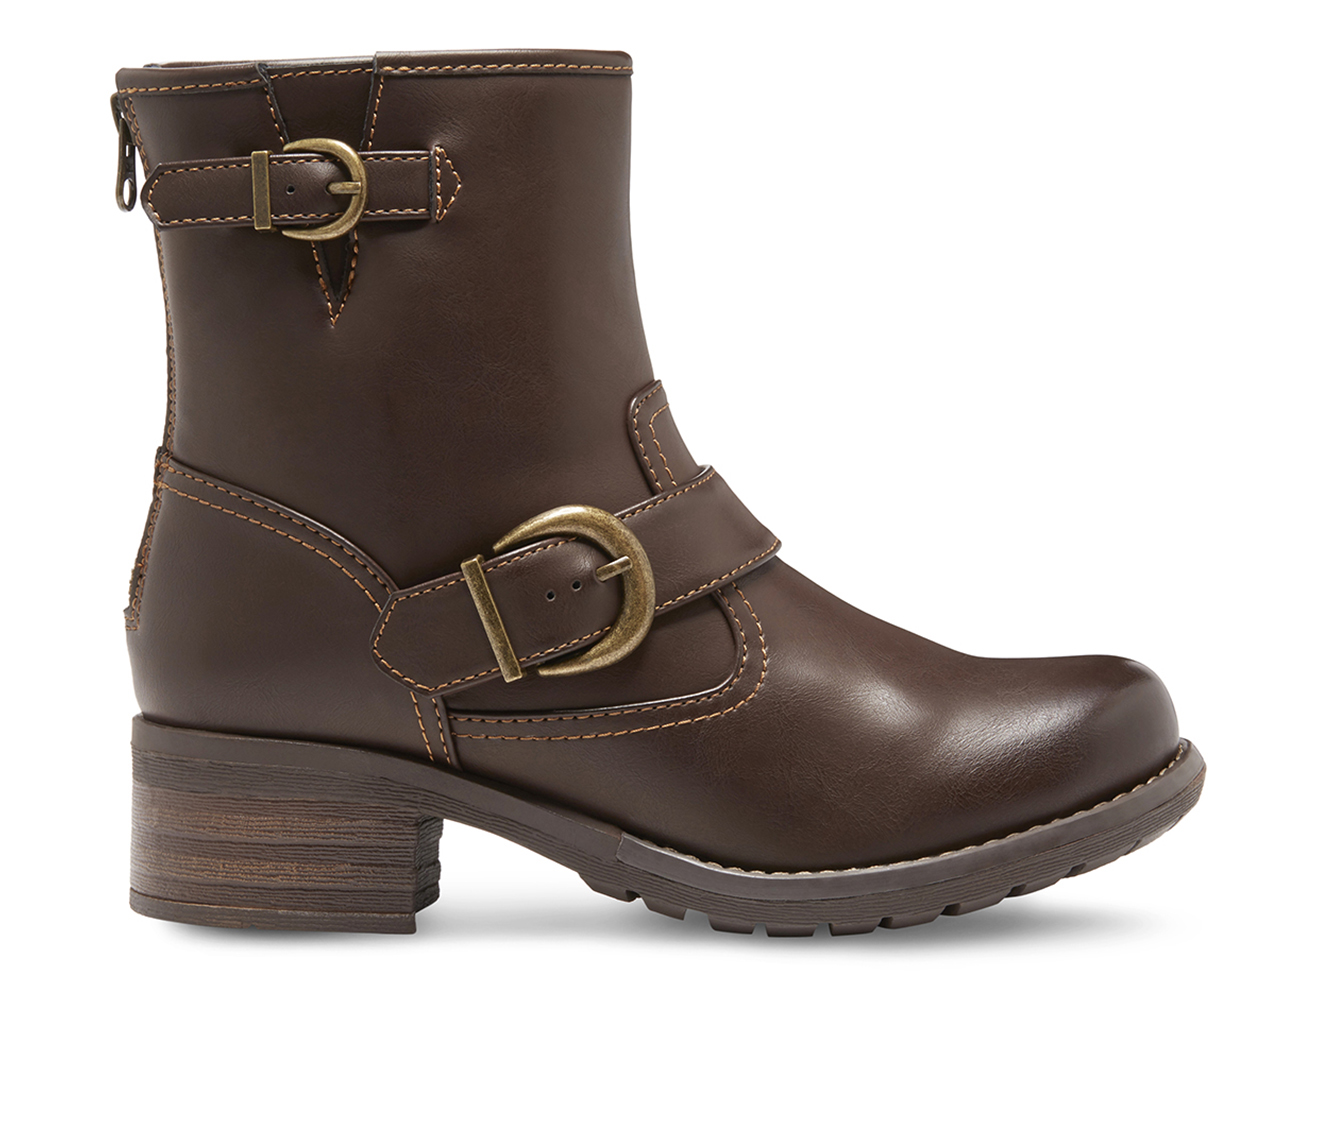 Eastland Ada Women's Boots (Brown - Leather)